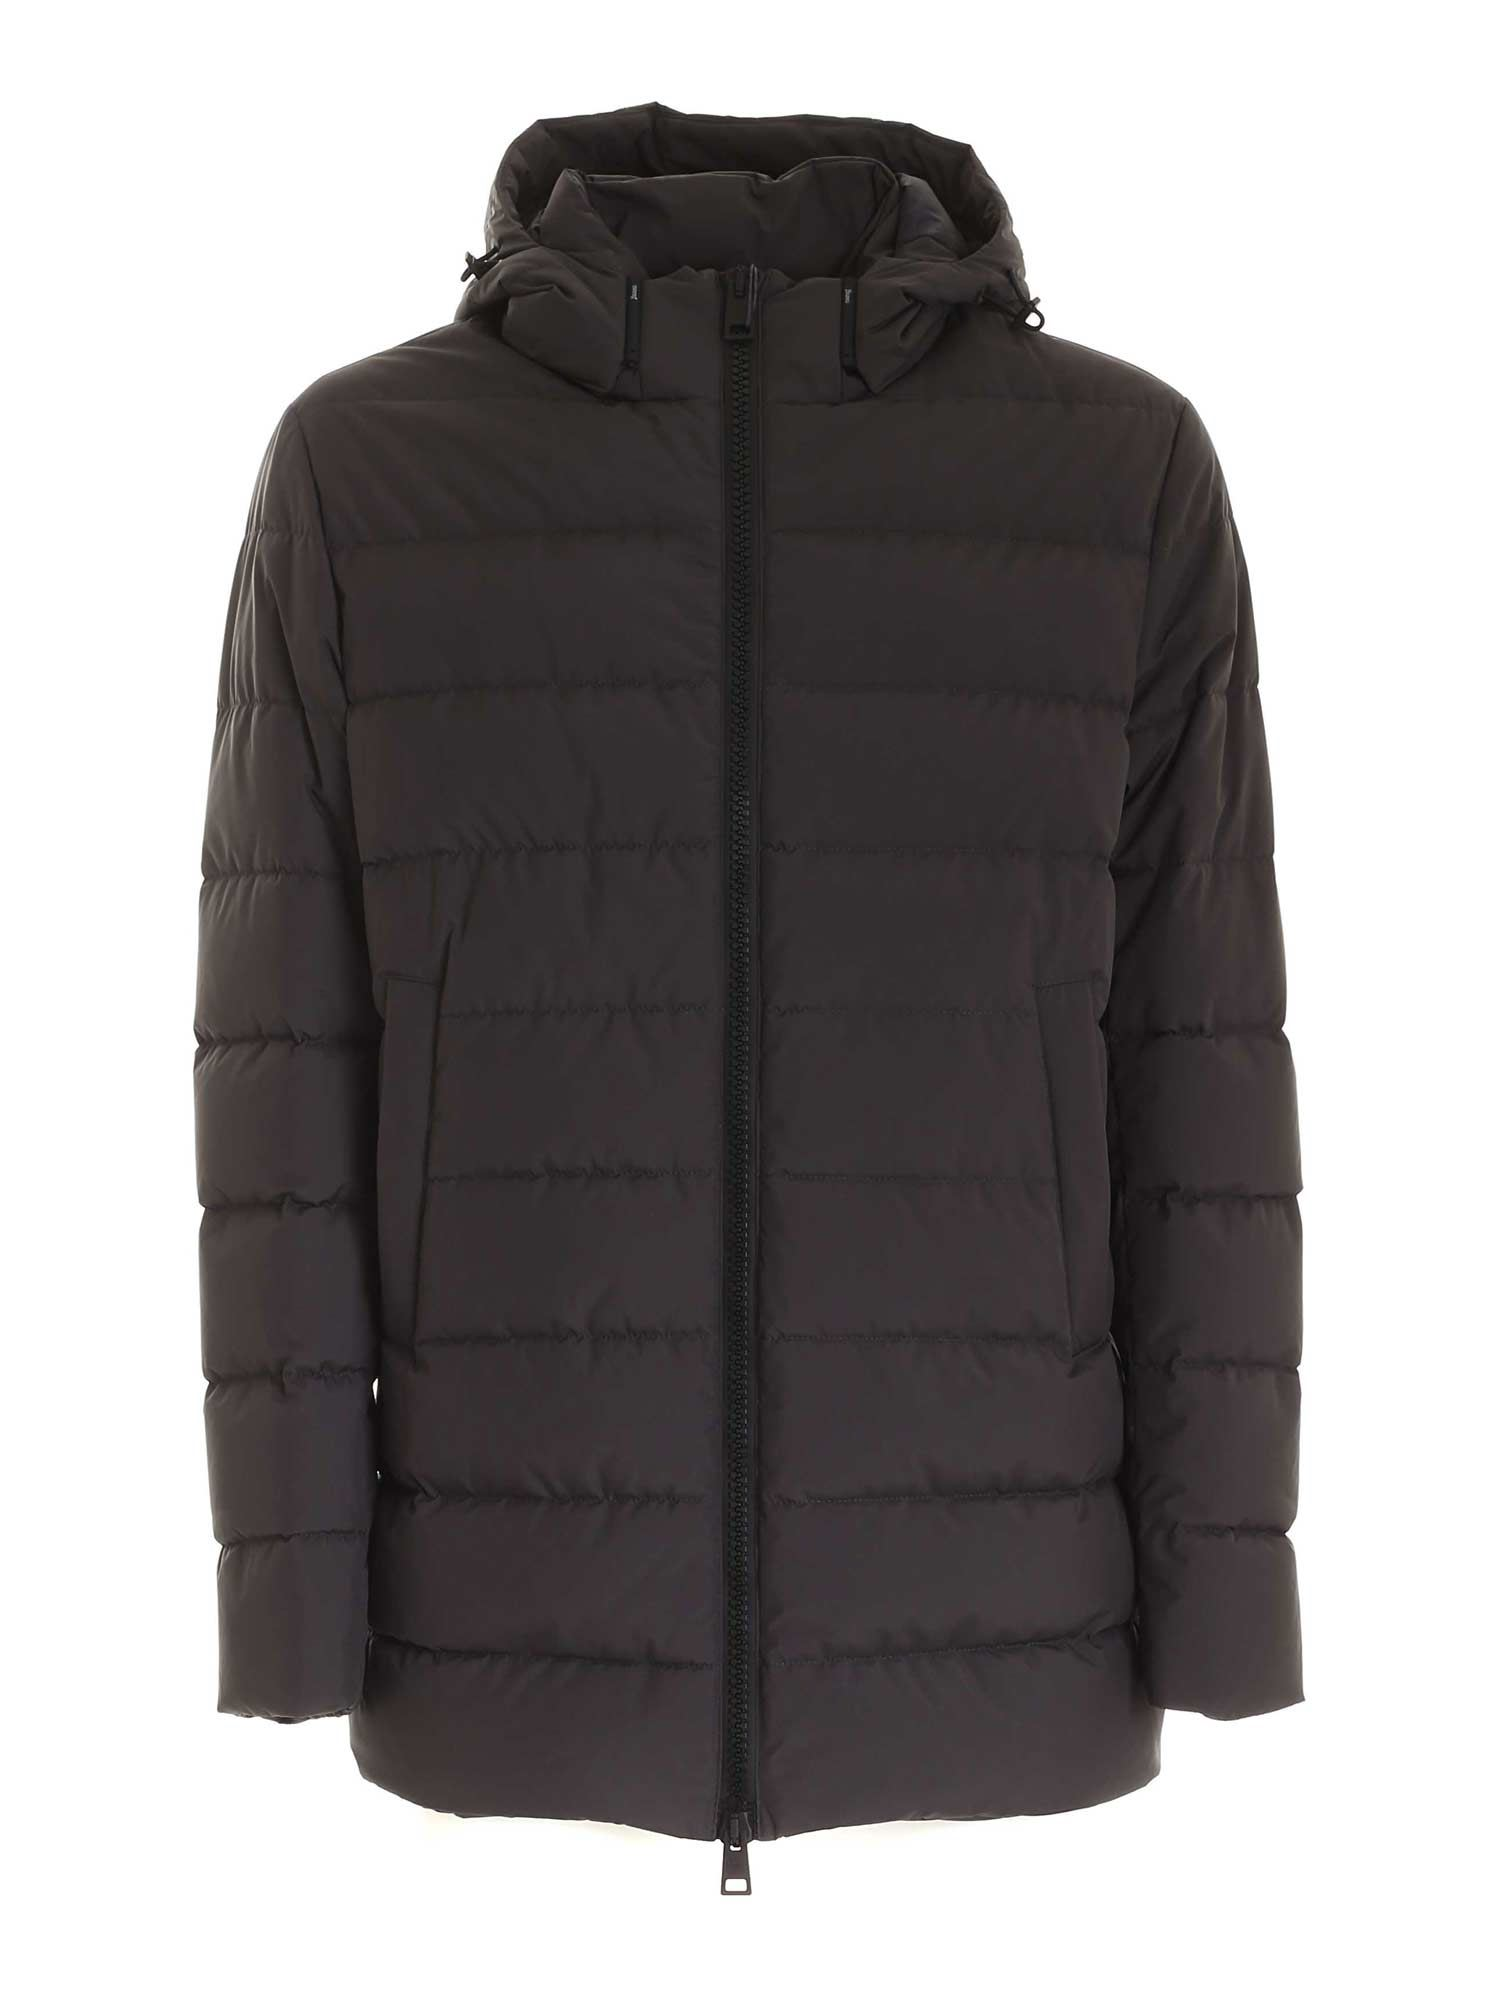 Herno Downs GORE-TEX INFINIUM ™ DOWN JACKET IN ANTHRACITE COLOR